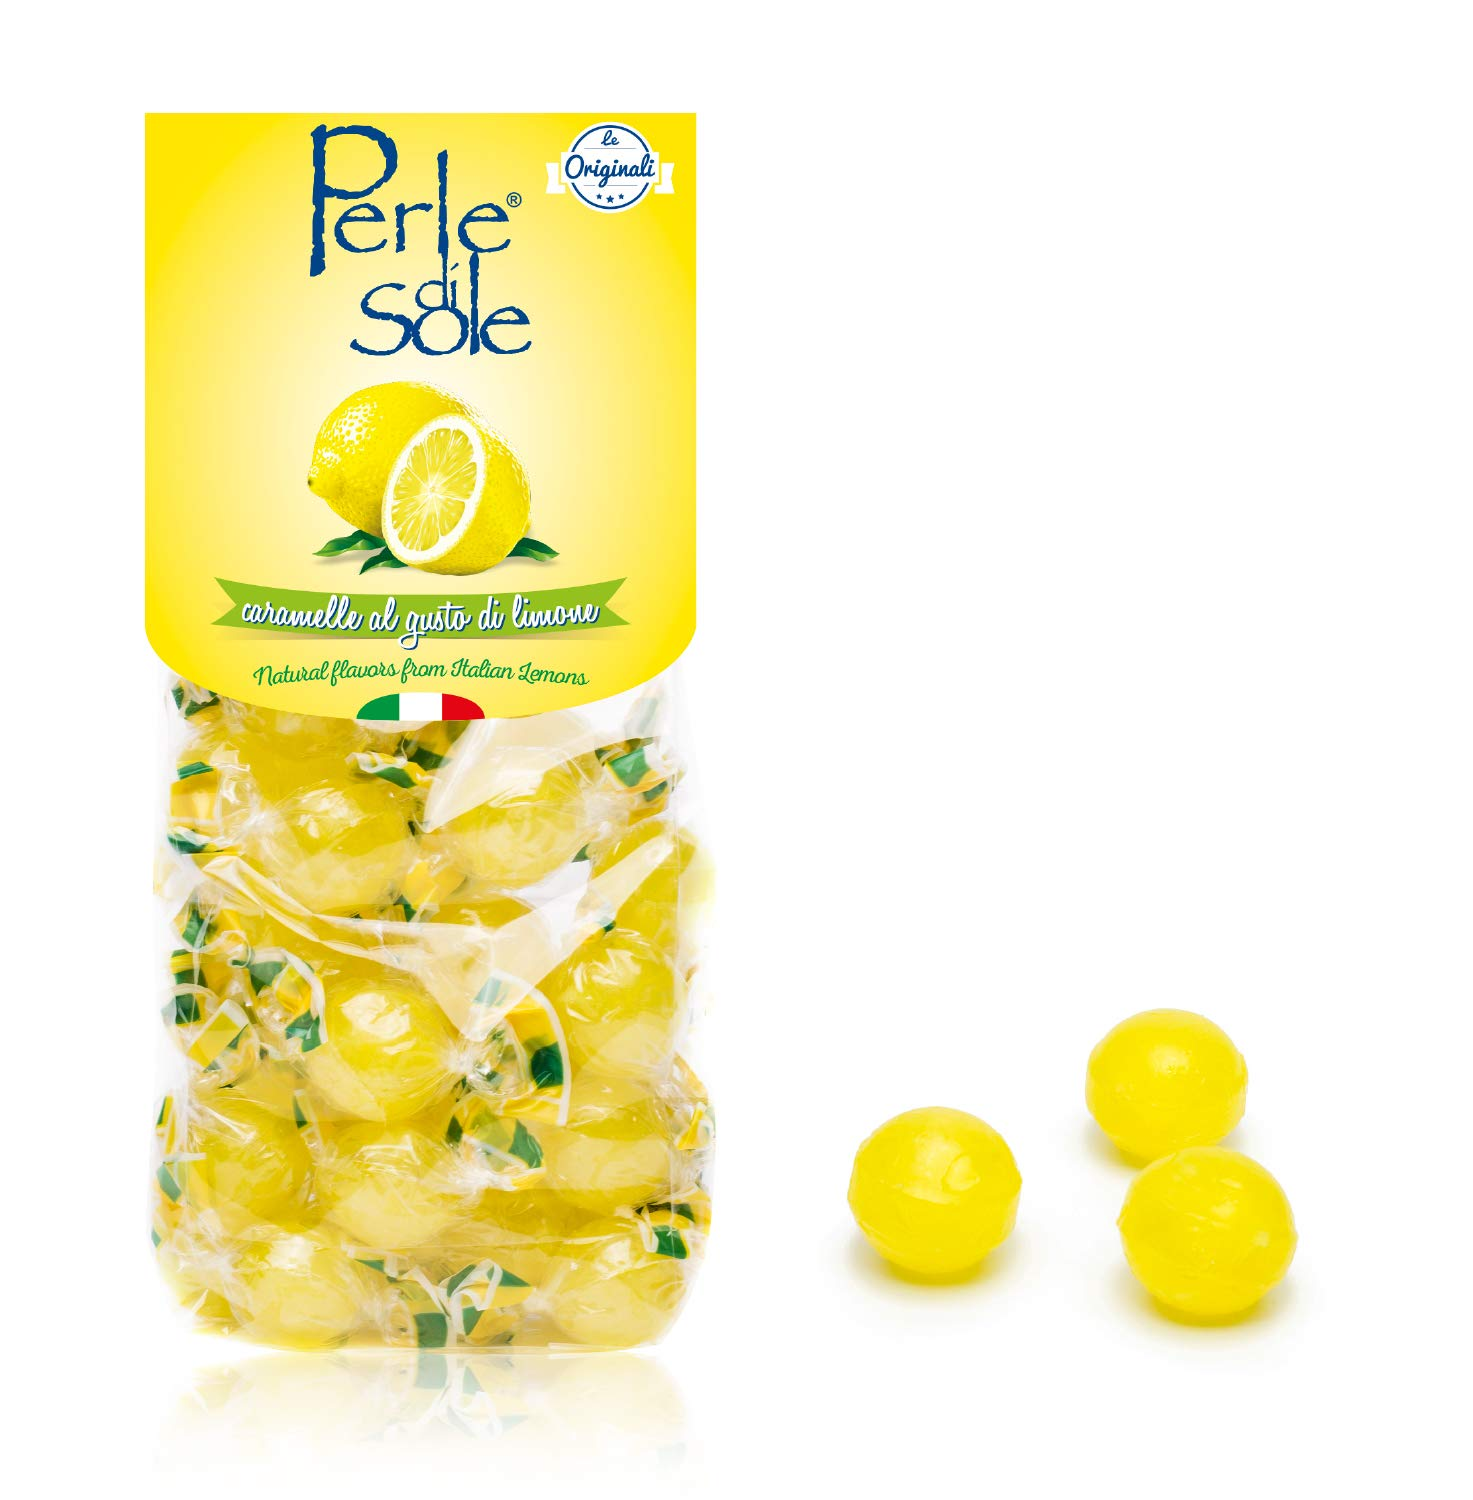 Perle di Sole Amalfi Lemon Drops (6 x 7.05oz Bag) by Perle di Sole